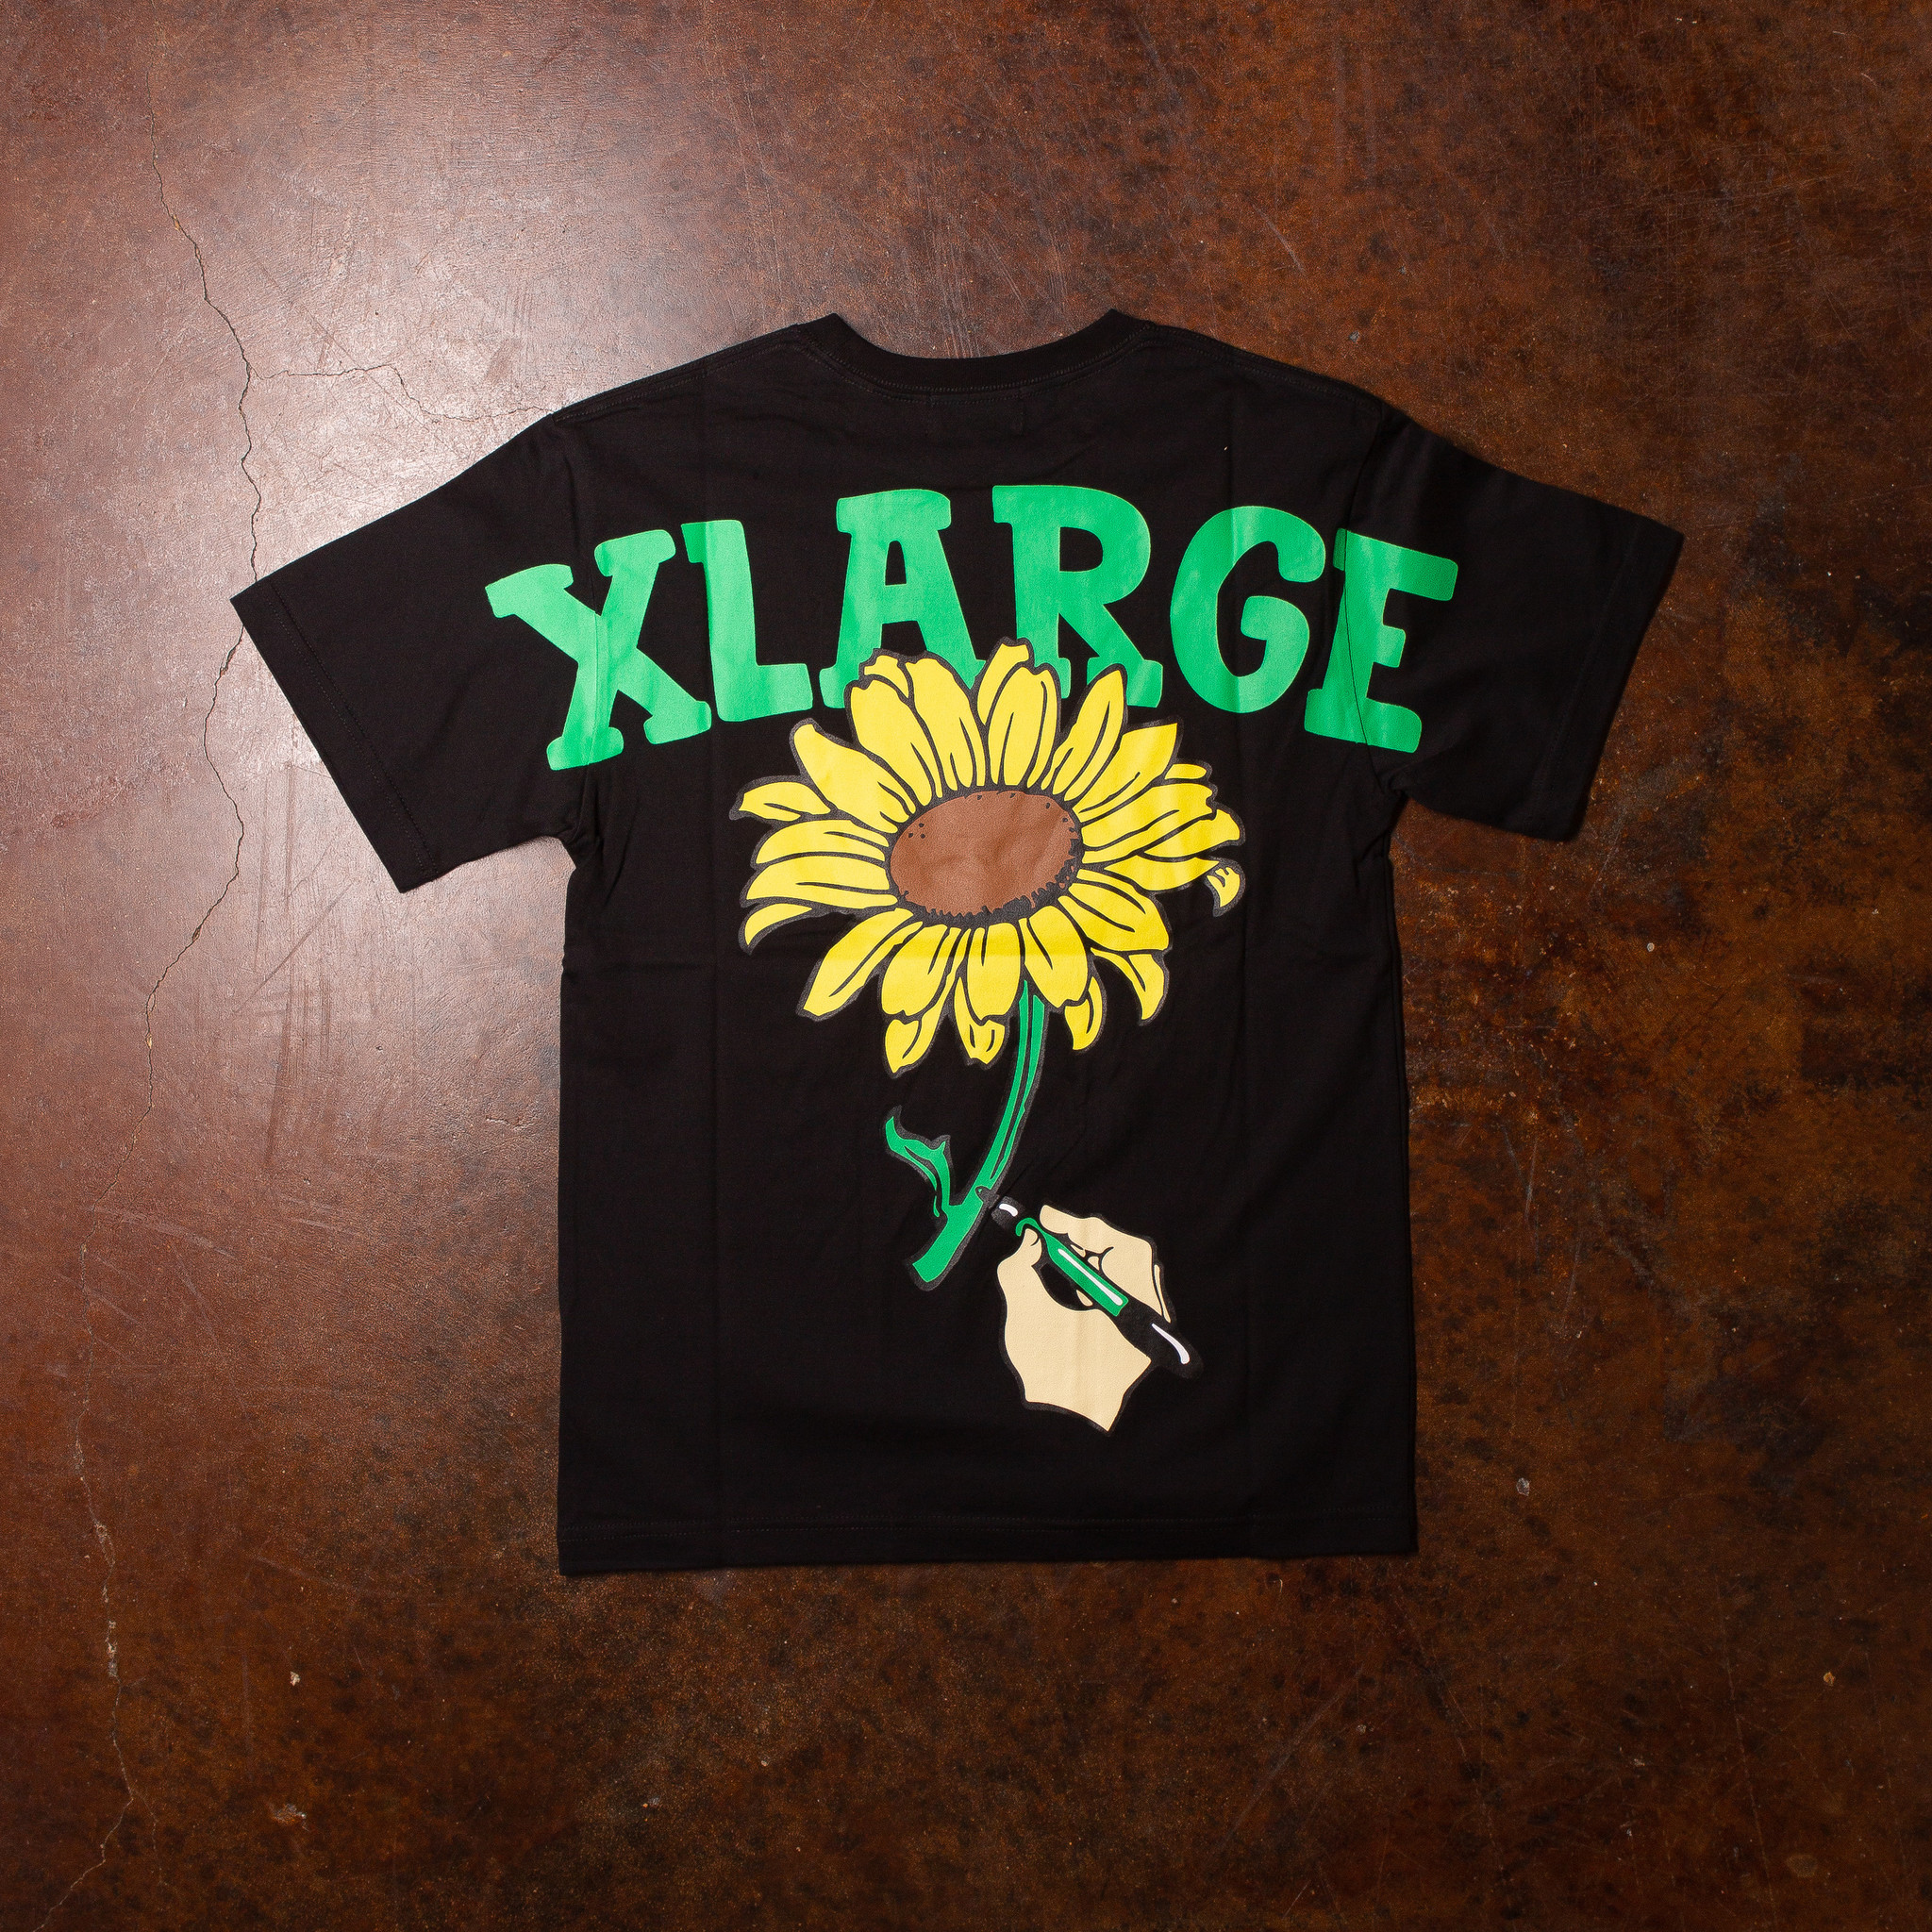 XLarge Sunflower Short Sleeve Tee